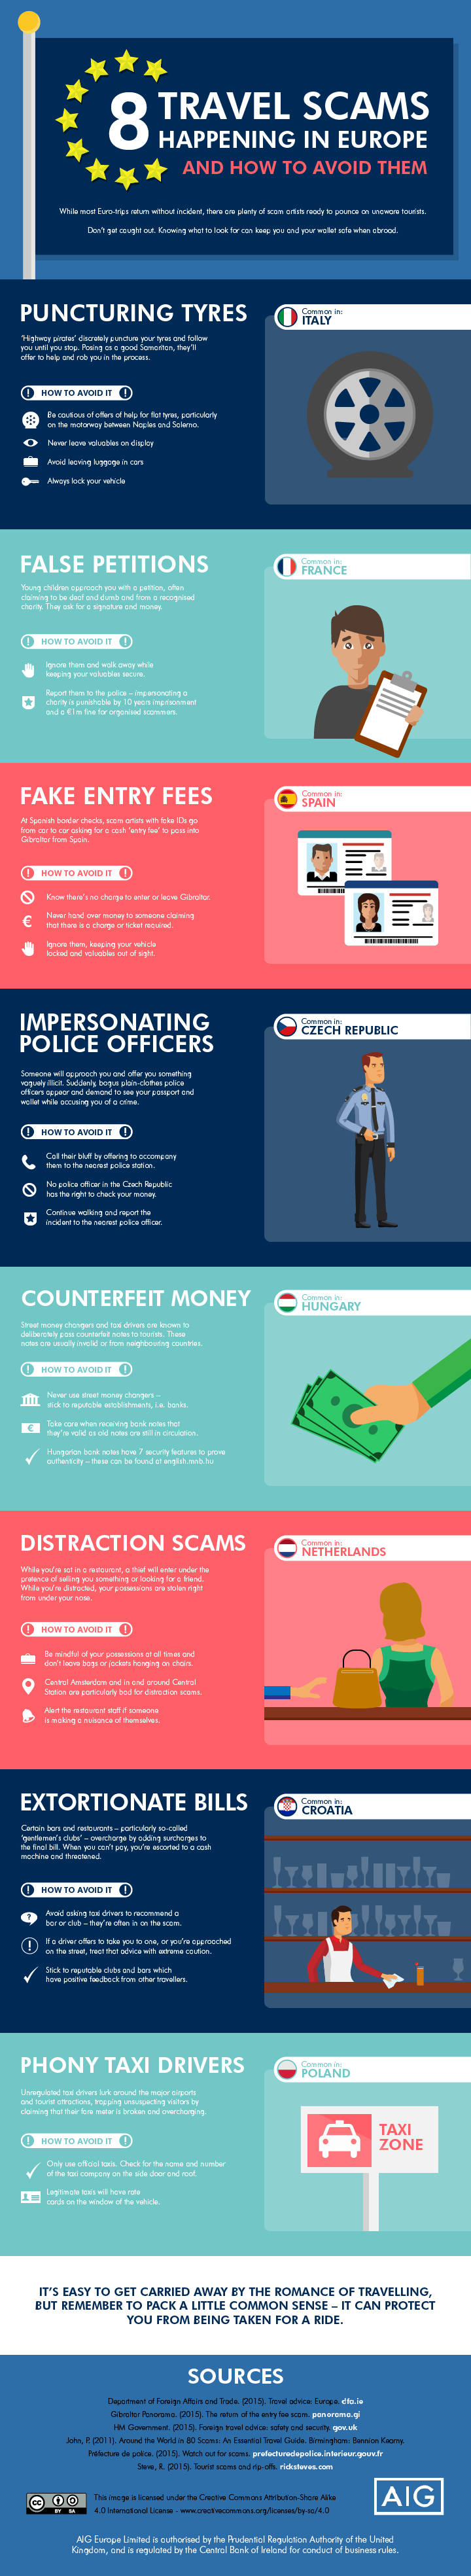 Europe travel scams infographic